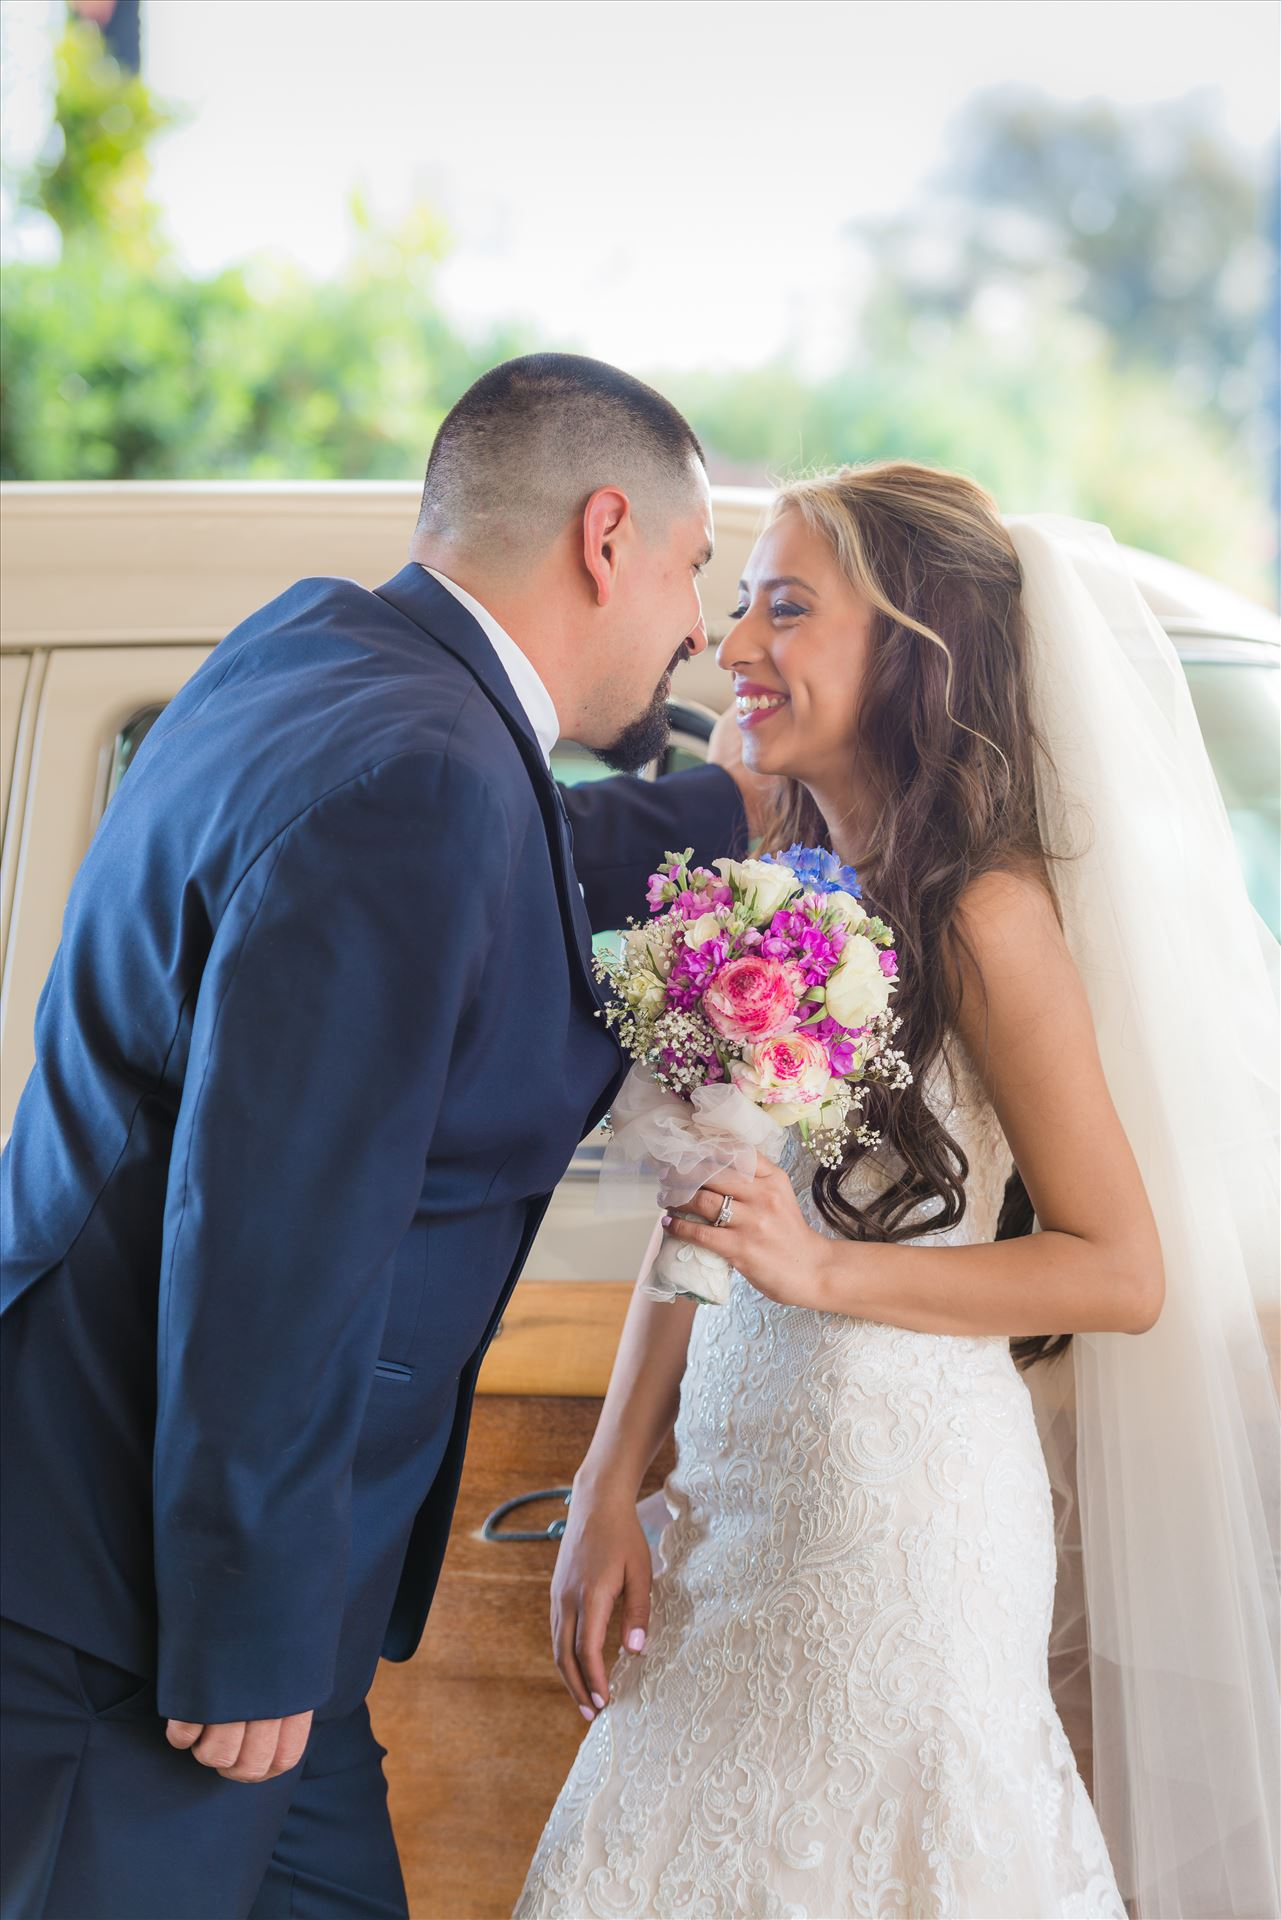 Ana and Juan 47 - Wedding photography at the Kimpton Goodland Hotel in Santa Barbara California by Mirror's Edge Photography.  Classic Bride and Groom by Sarah Williams